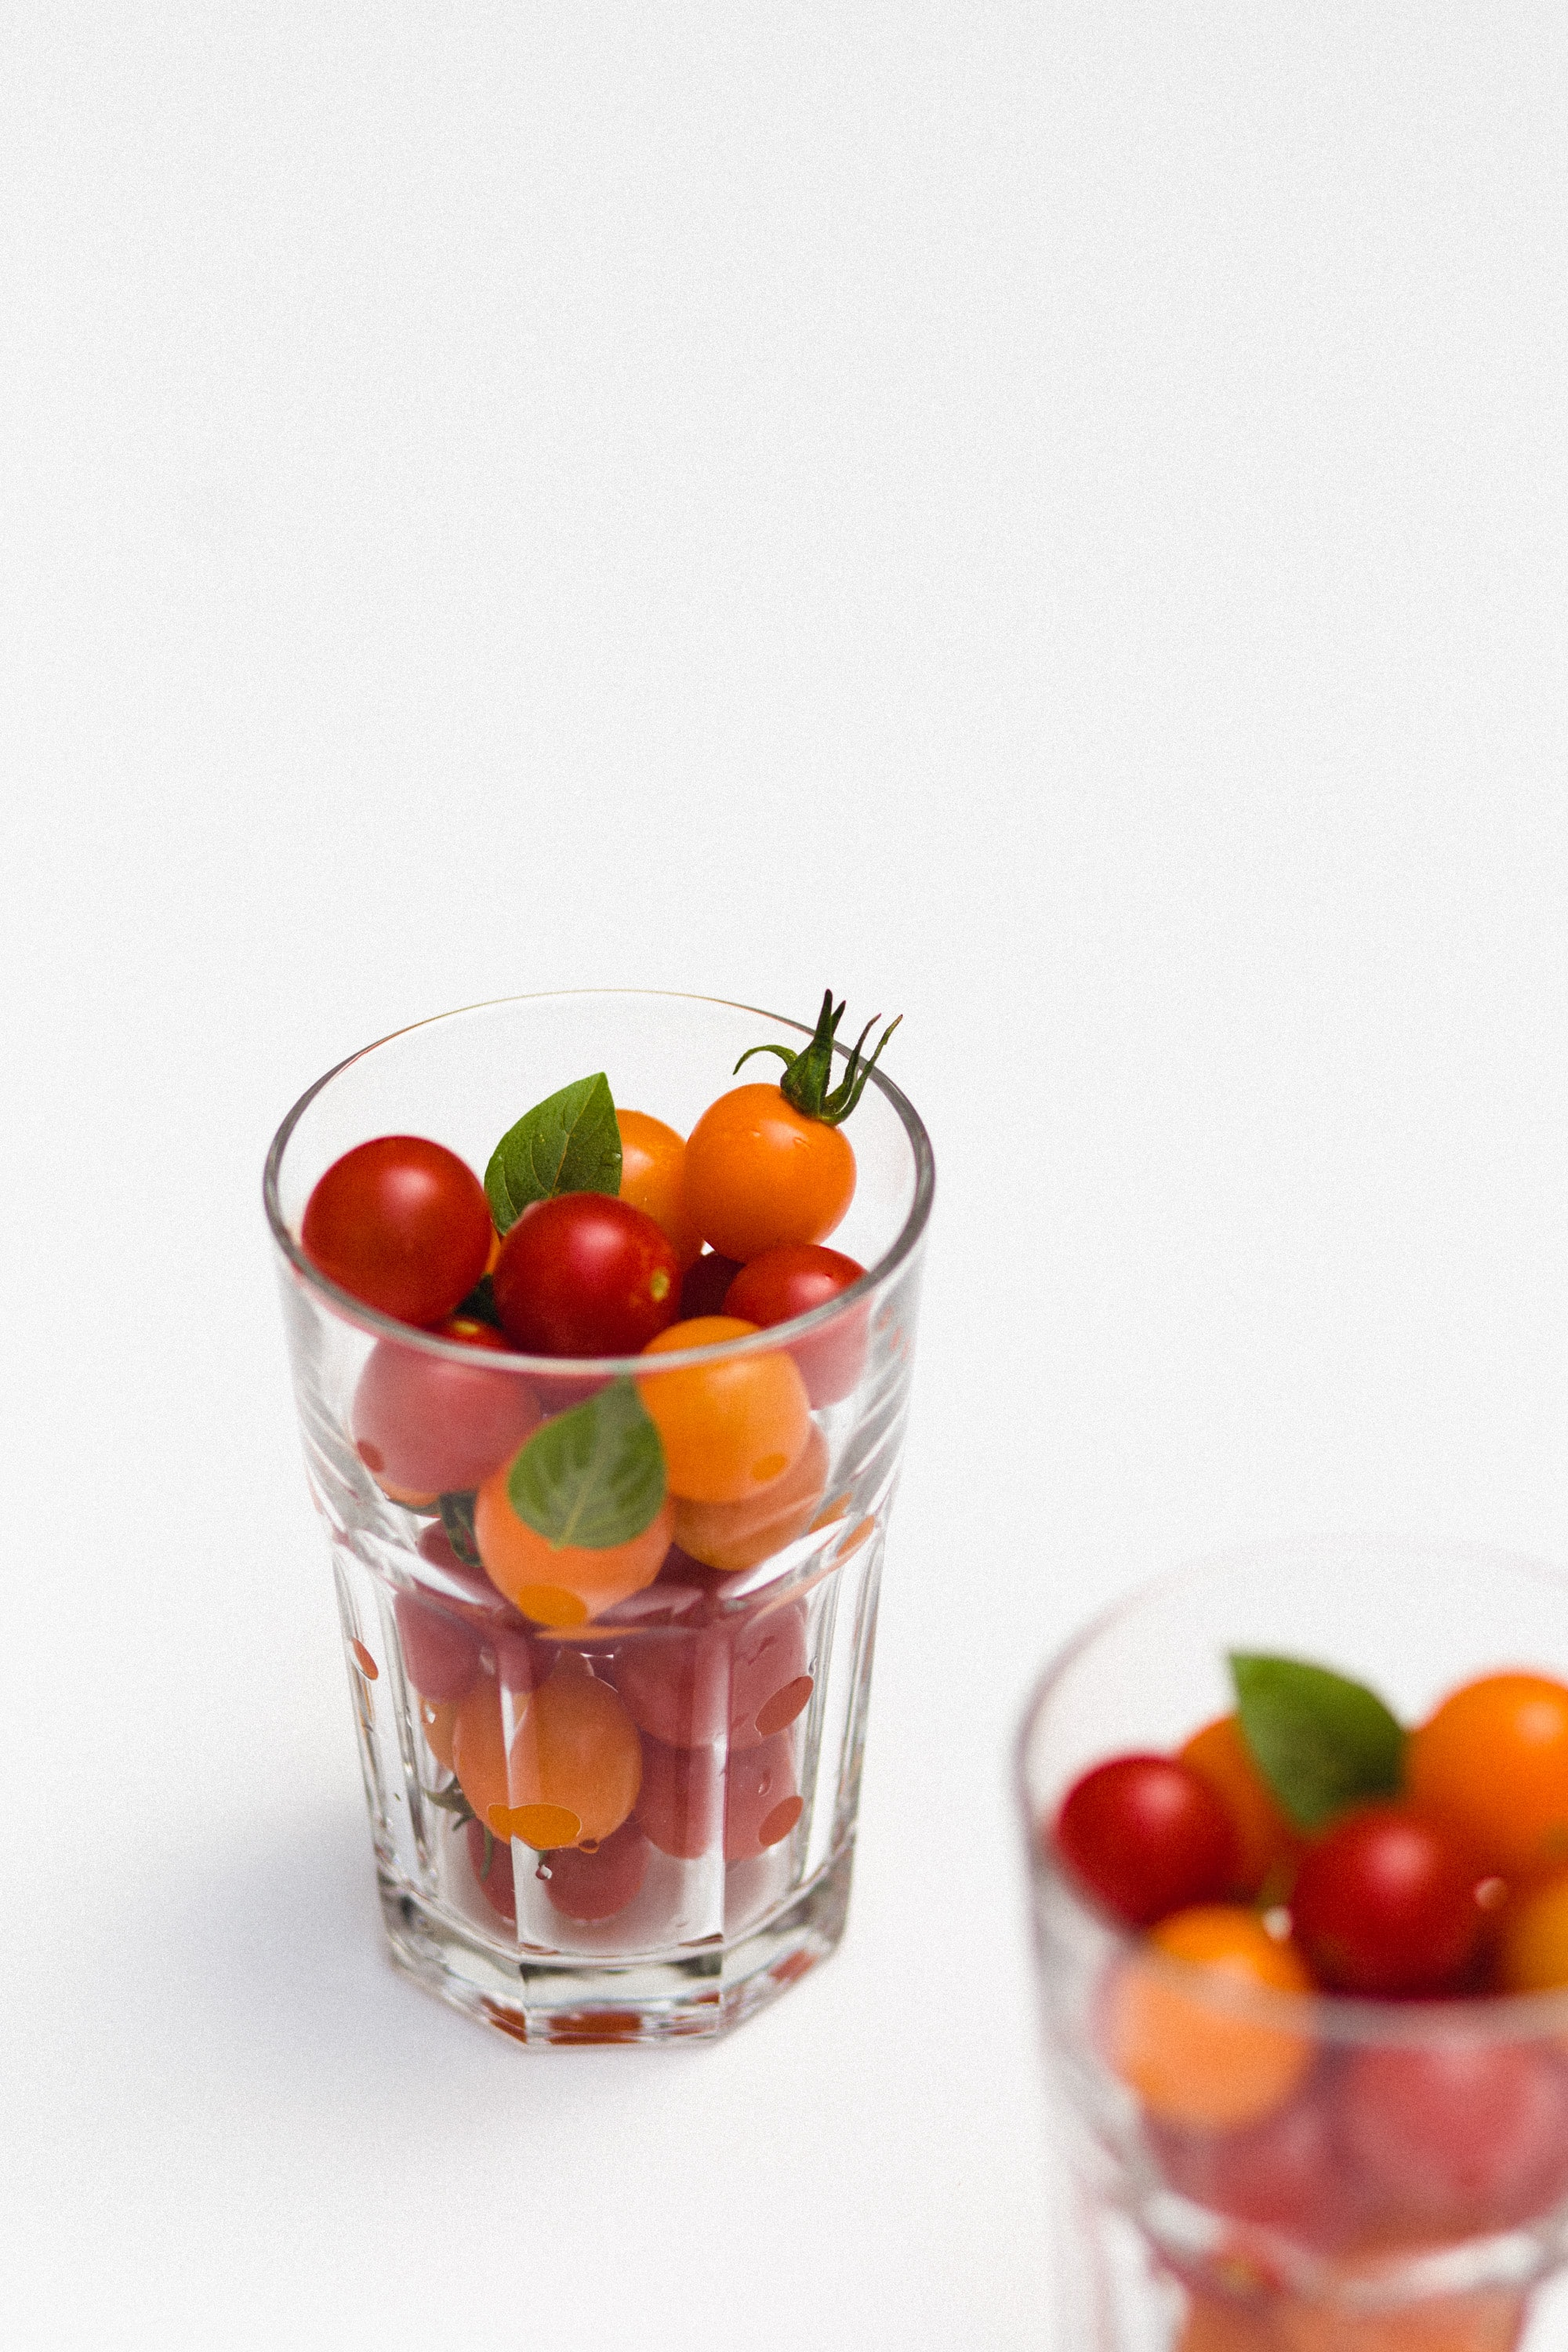 Glass cups of fresh cherry tomatoes ready to eat